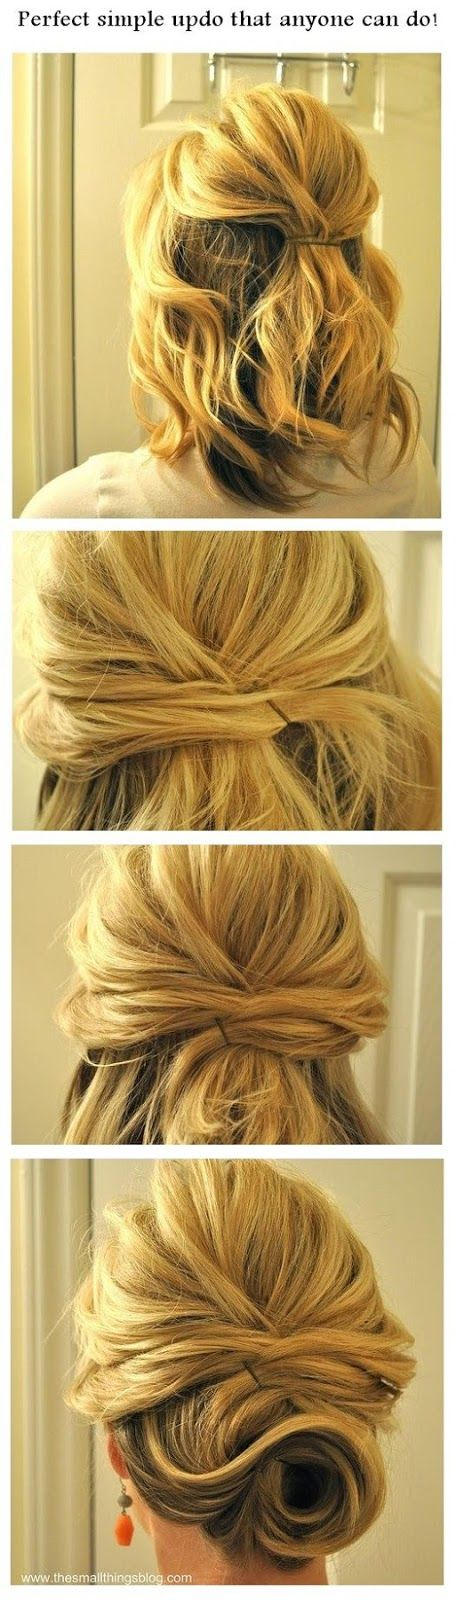 Beauty Tutorials: Perfect simple updo that anyone can do!